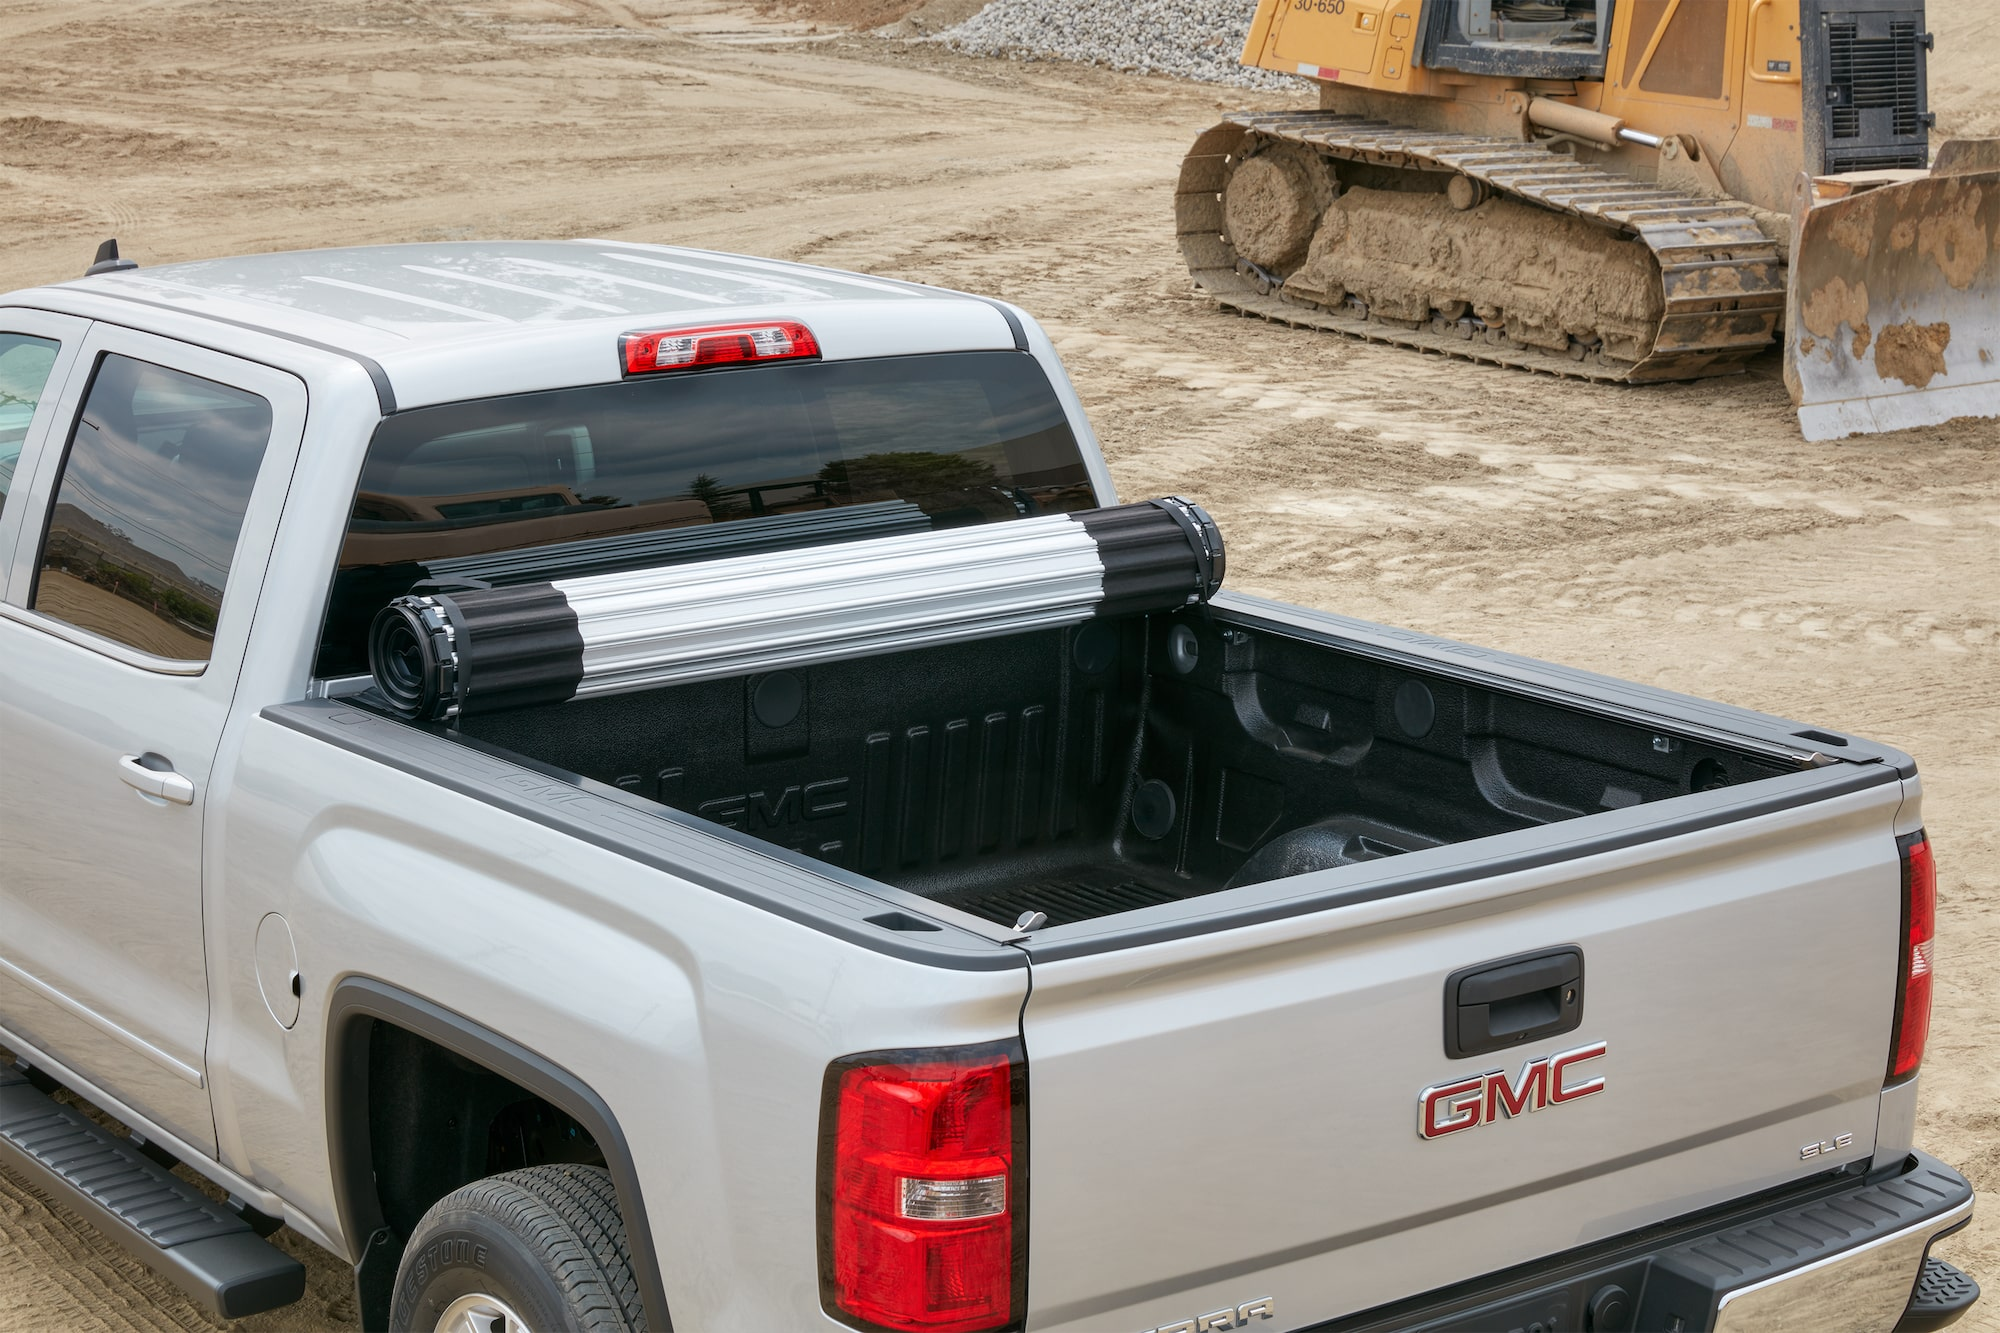 Top Your Pickup With a Tonneau Cover   GMC Life GMC life tonneau cover rollling cover